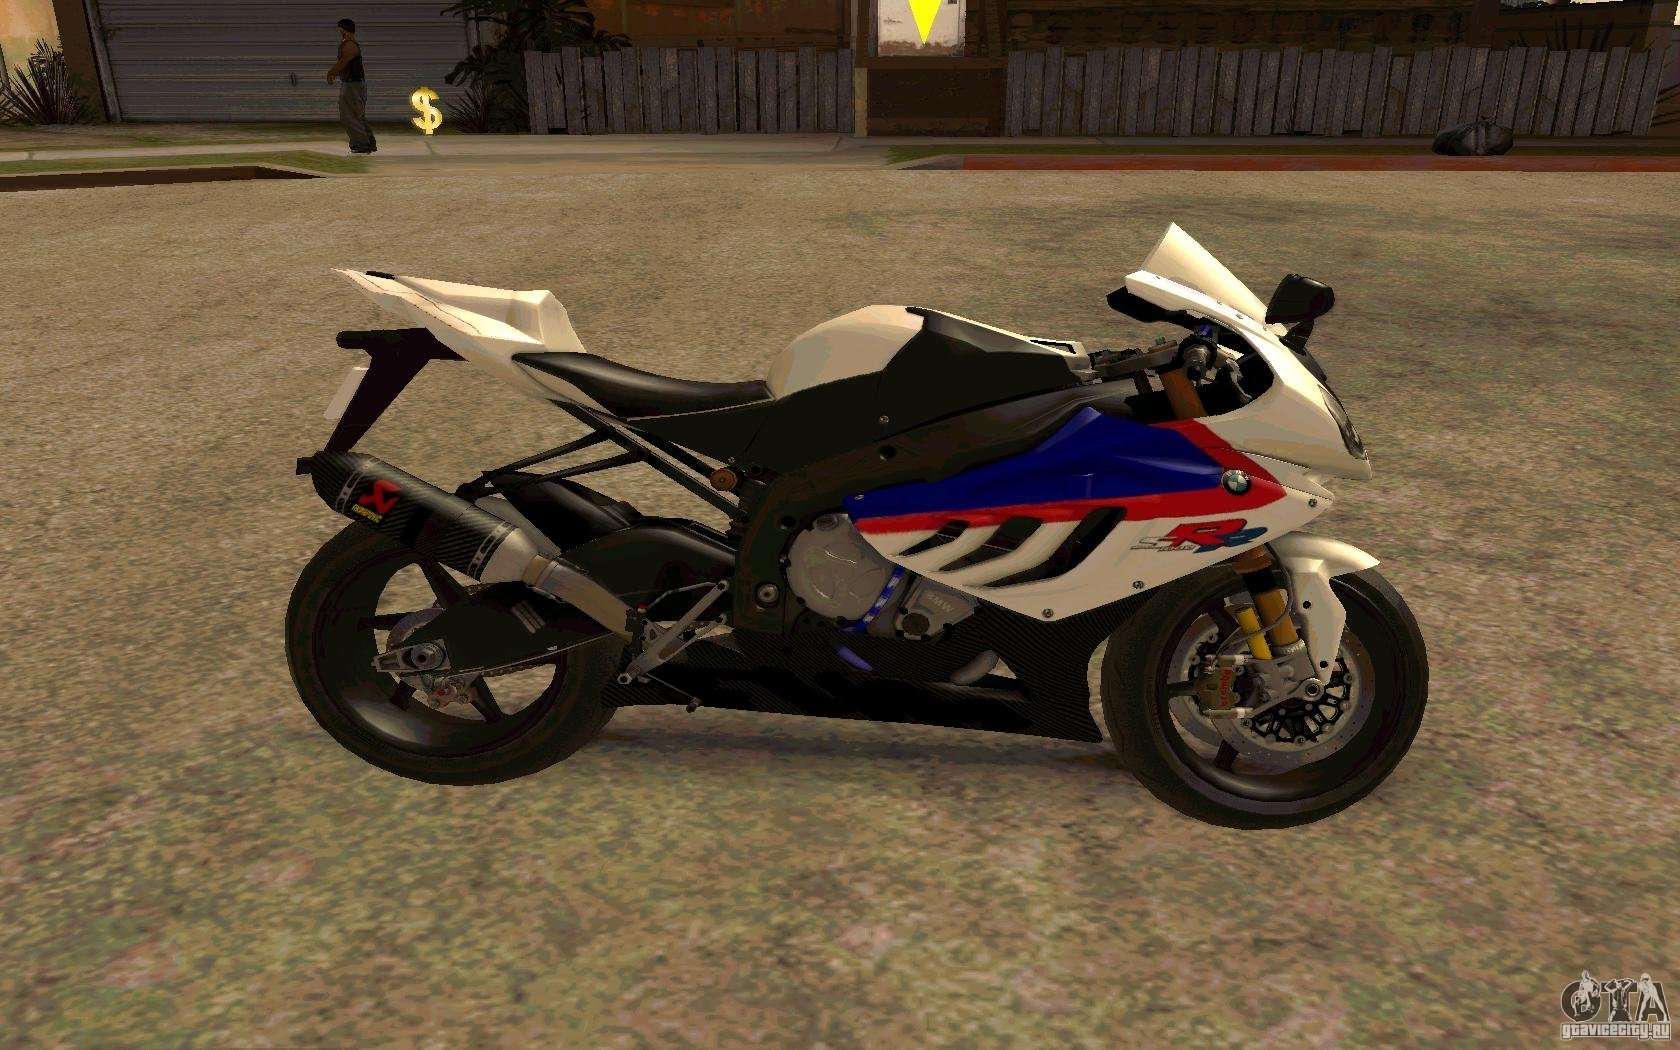 13 Gta San Andreas Mods Trainer And Speedometer